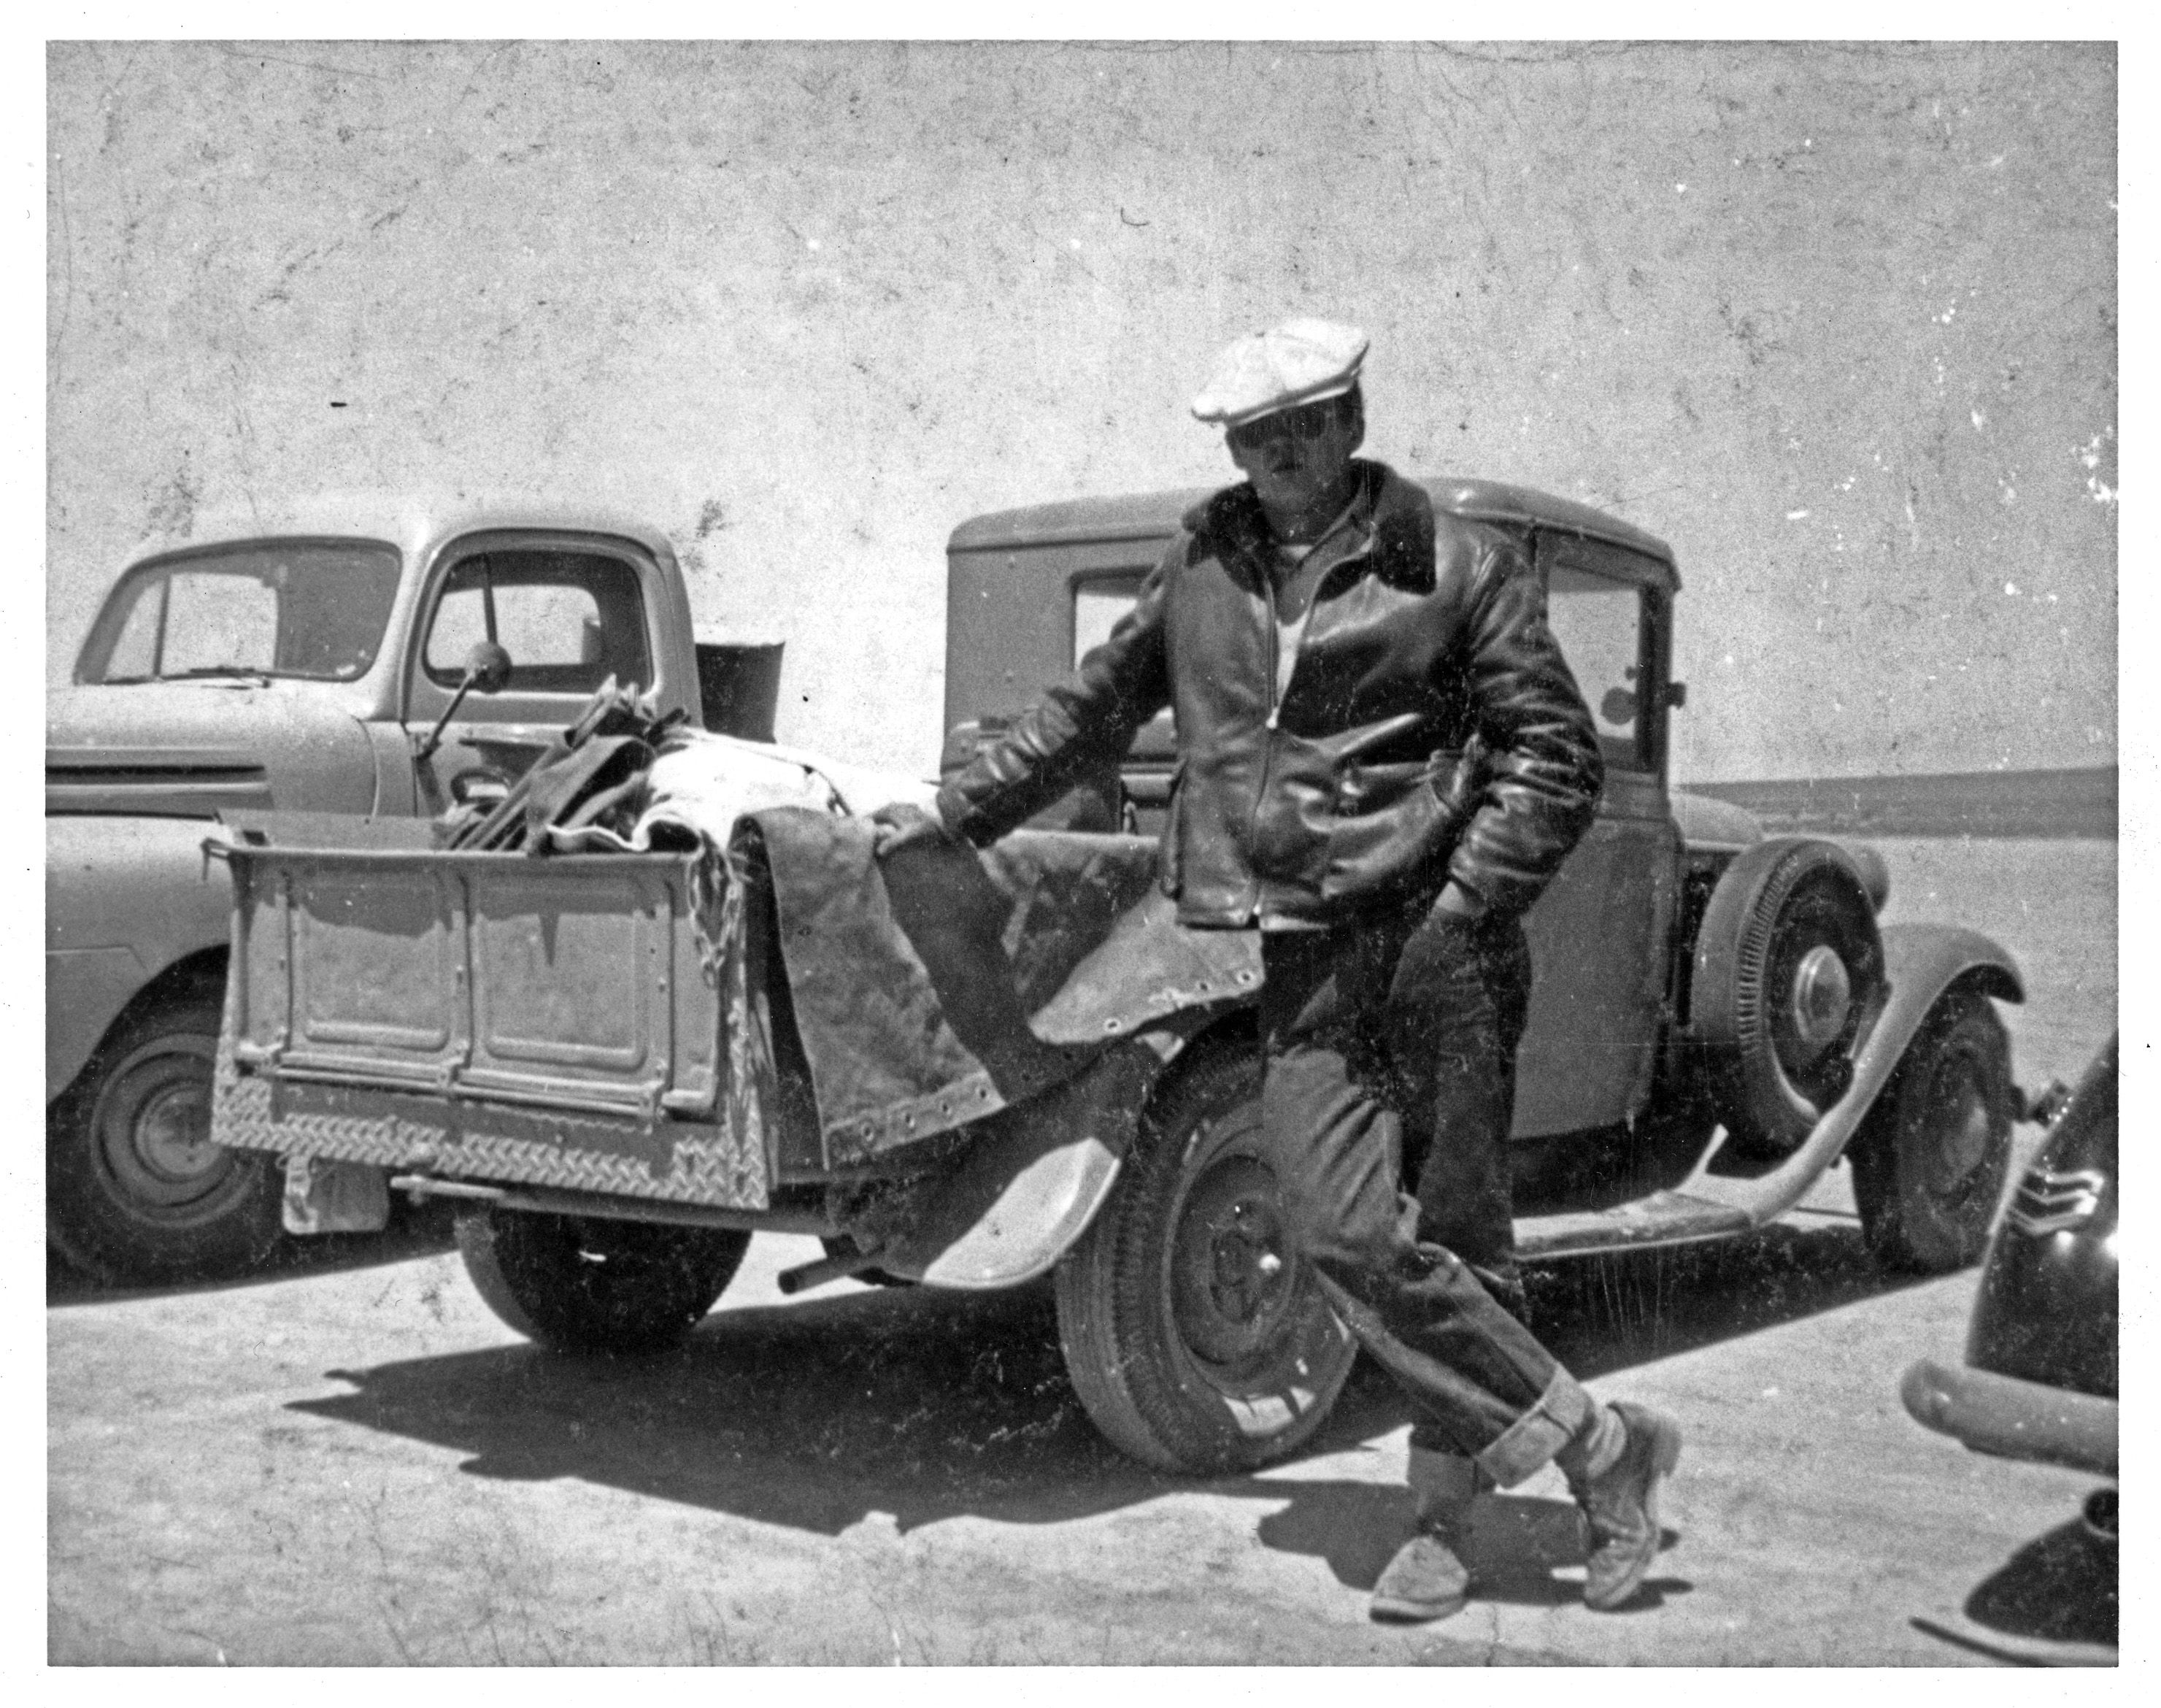 Frank At Muroc Dry Lake With His 34 Ford Pickup Frank Currie